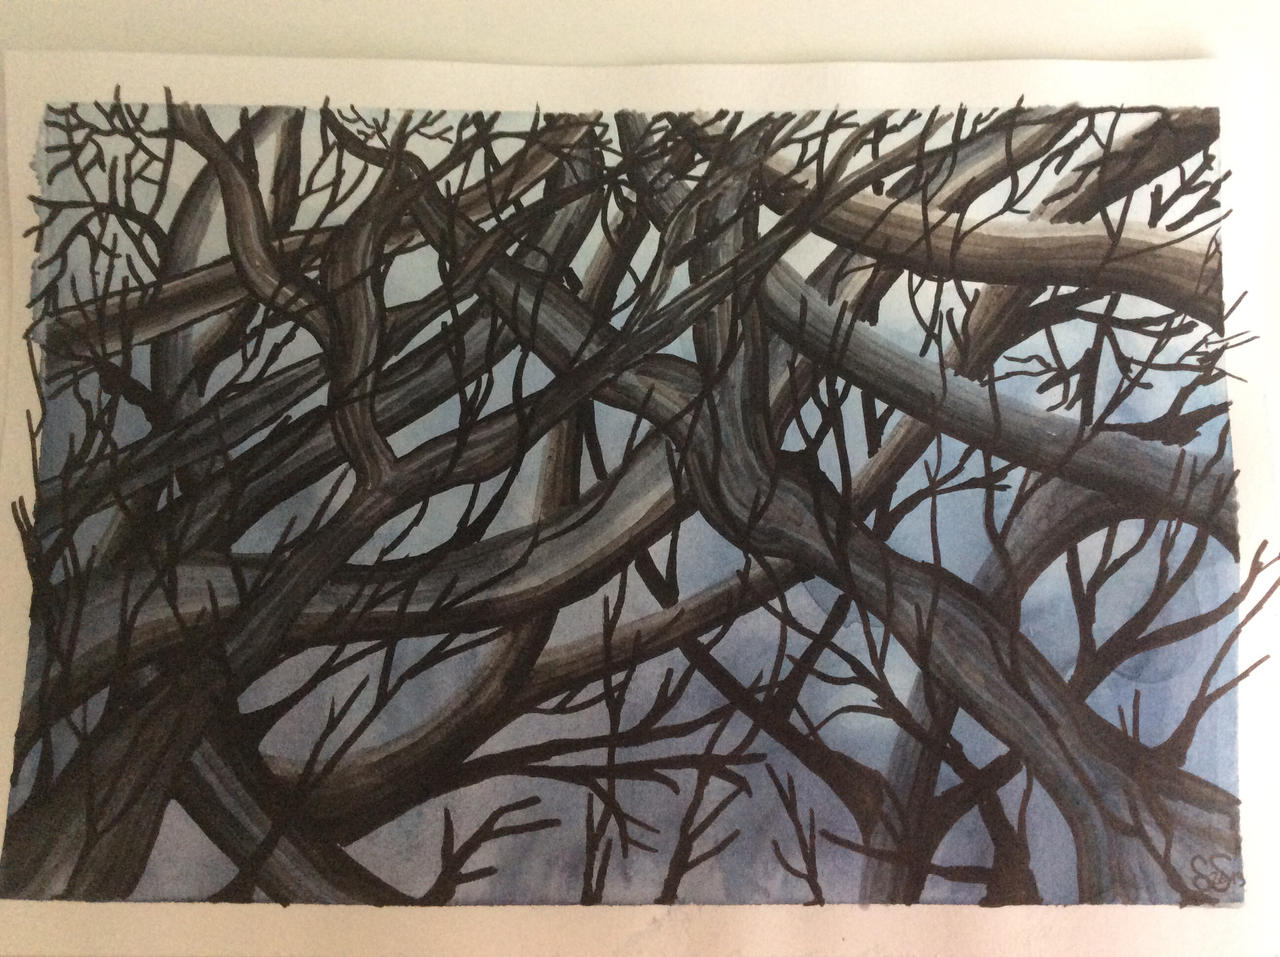 Branches over a nightsky